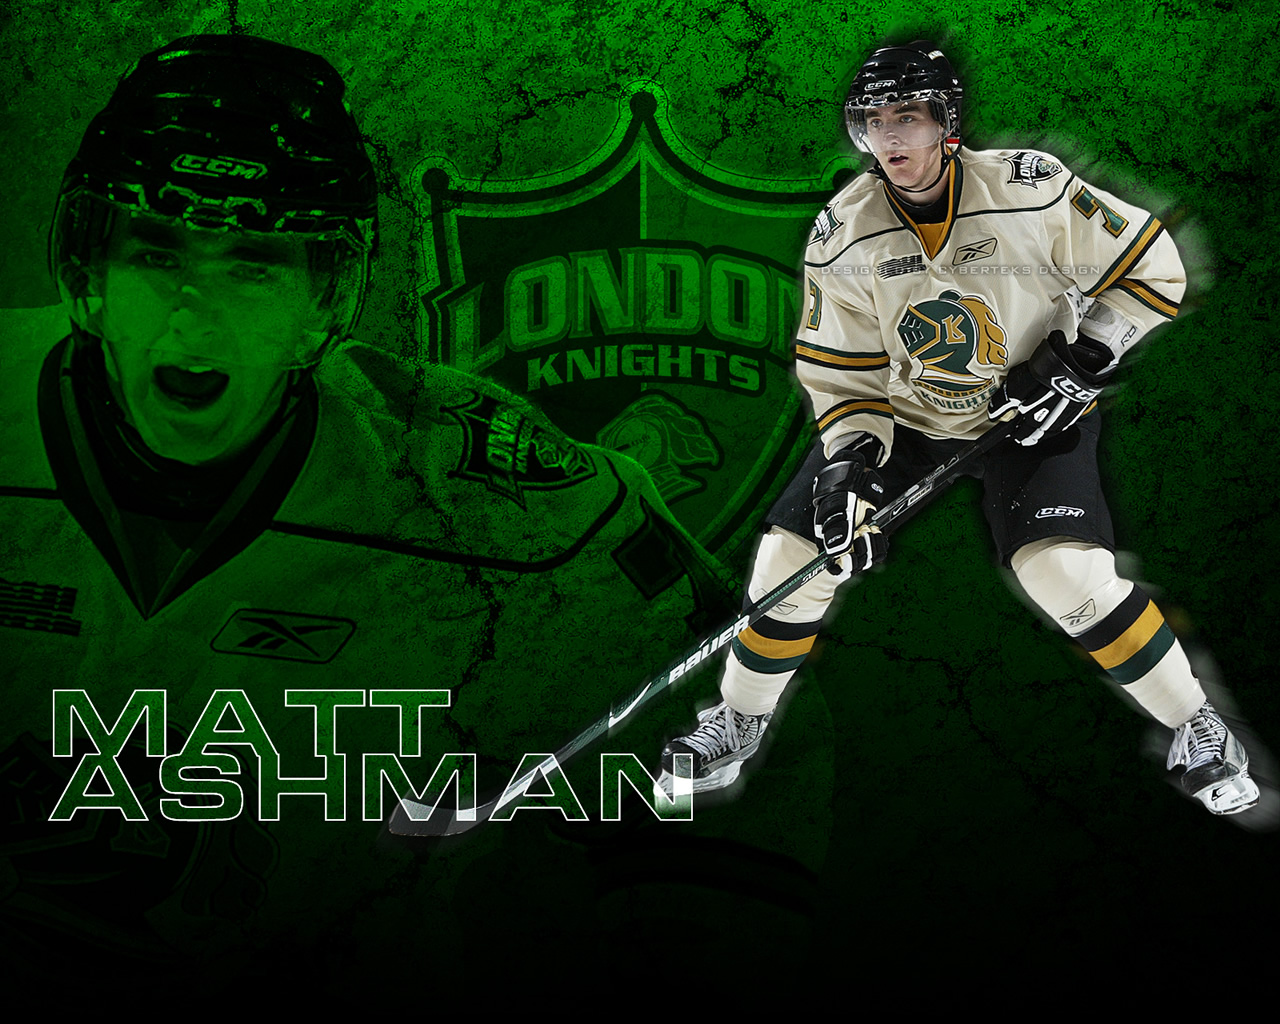 Object Moved: London Knights Wallpaper